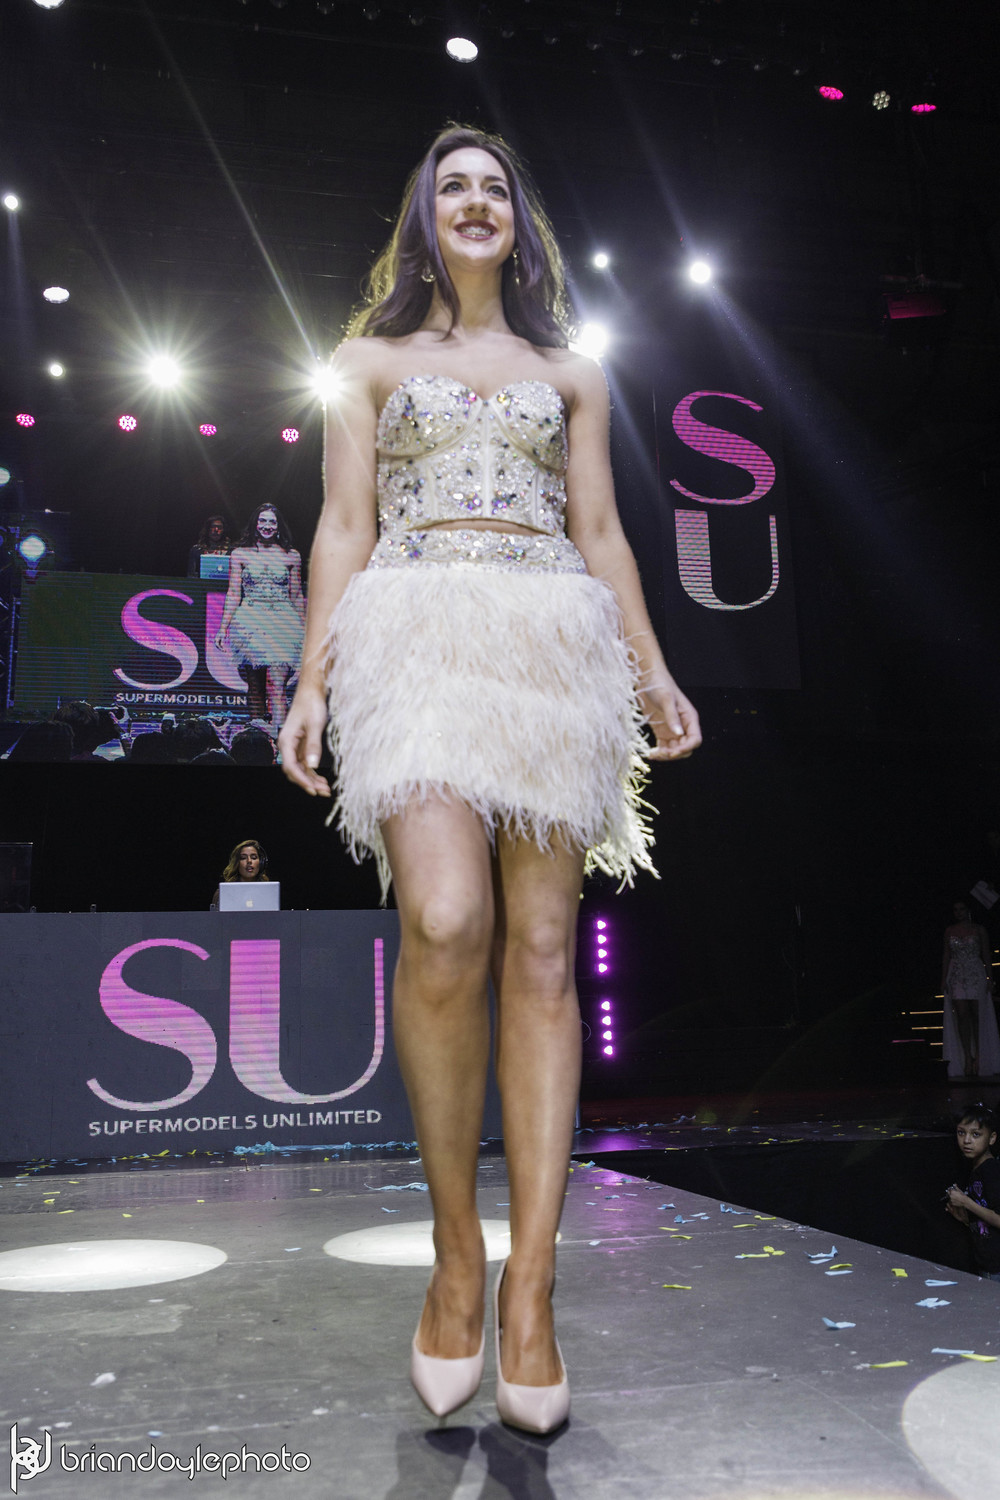 Tinashe @ Super Models Unlimited 15th Year Anniversary 31.01.2015-135.jpg